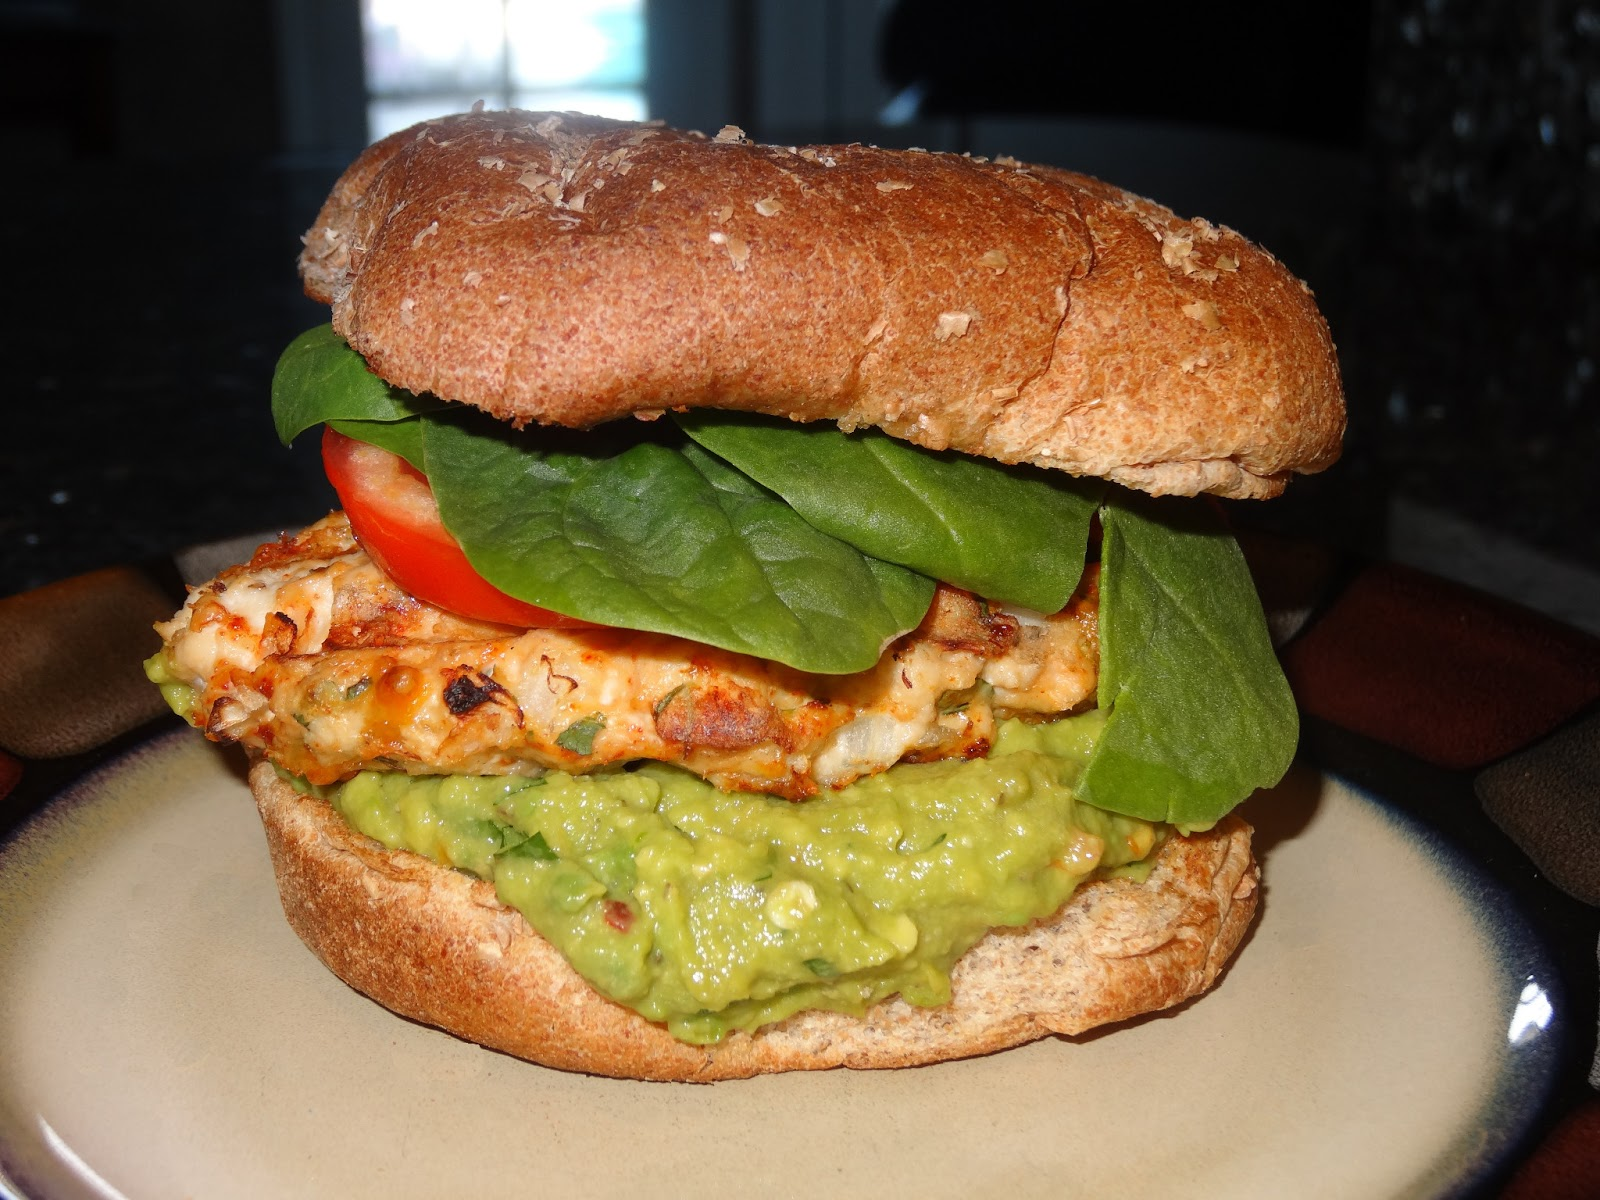 Cheddar+Jalapeno+Chicken+Burgers+with+Guacamole.jpg